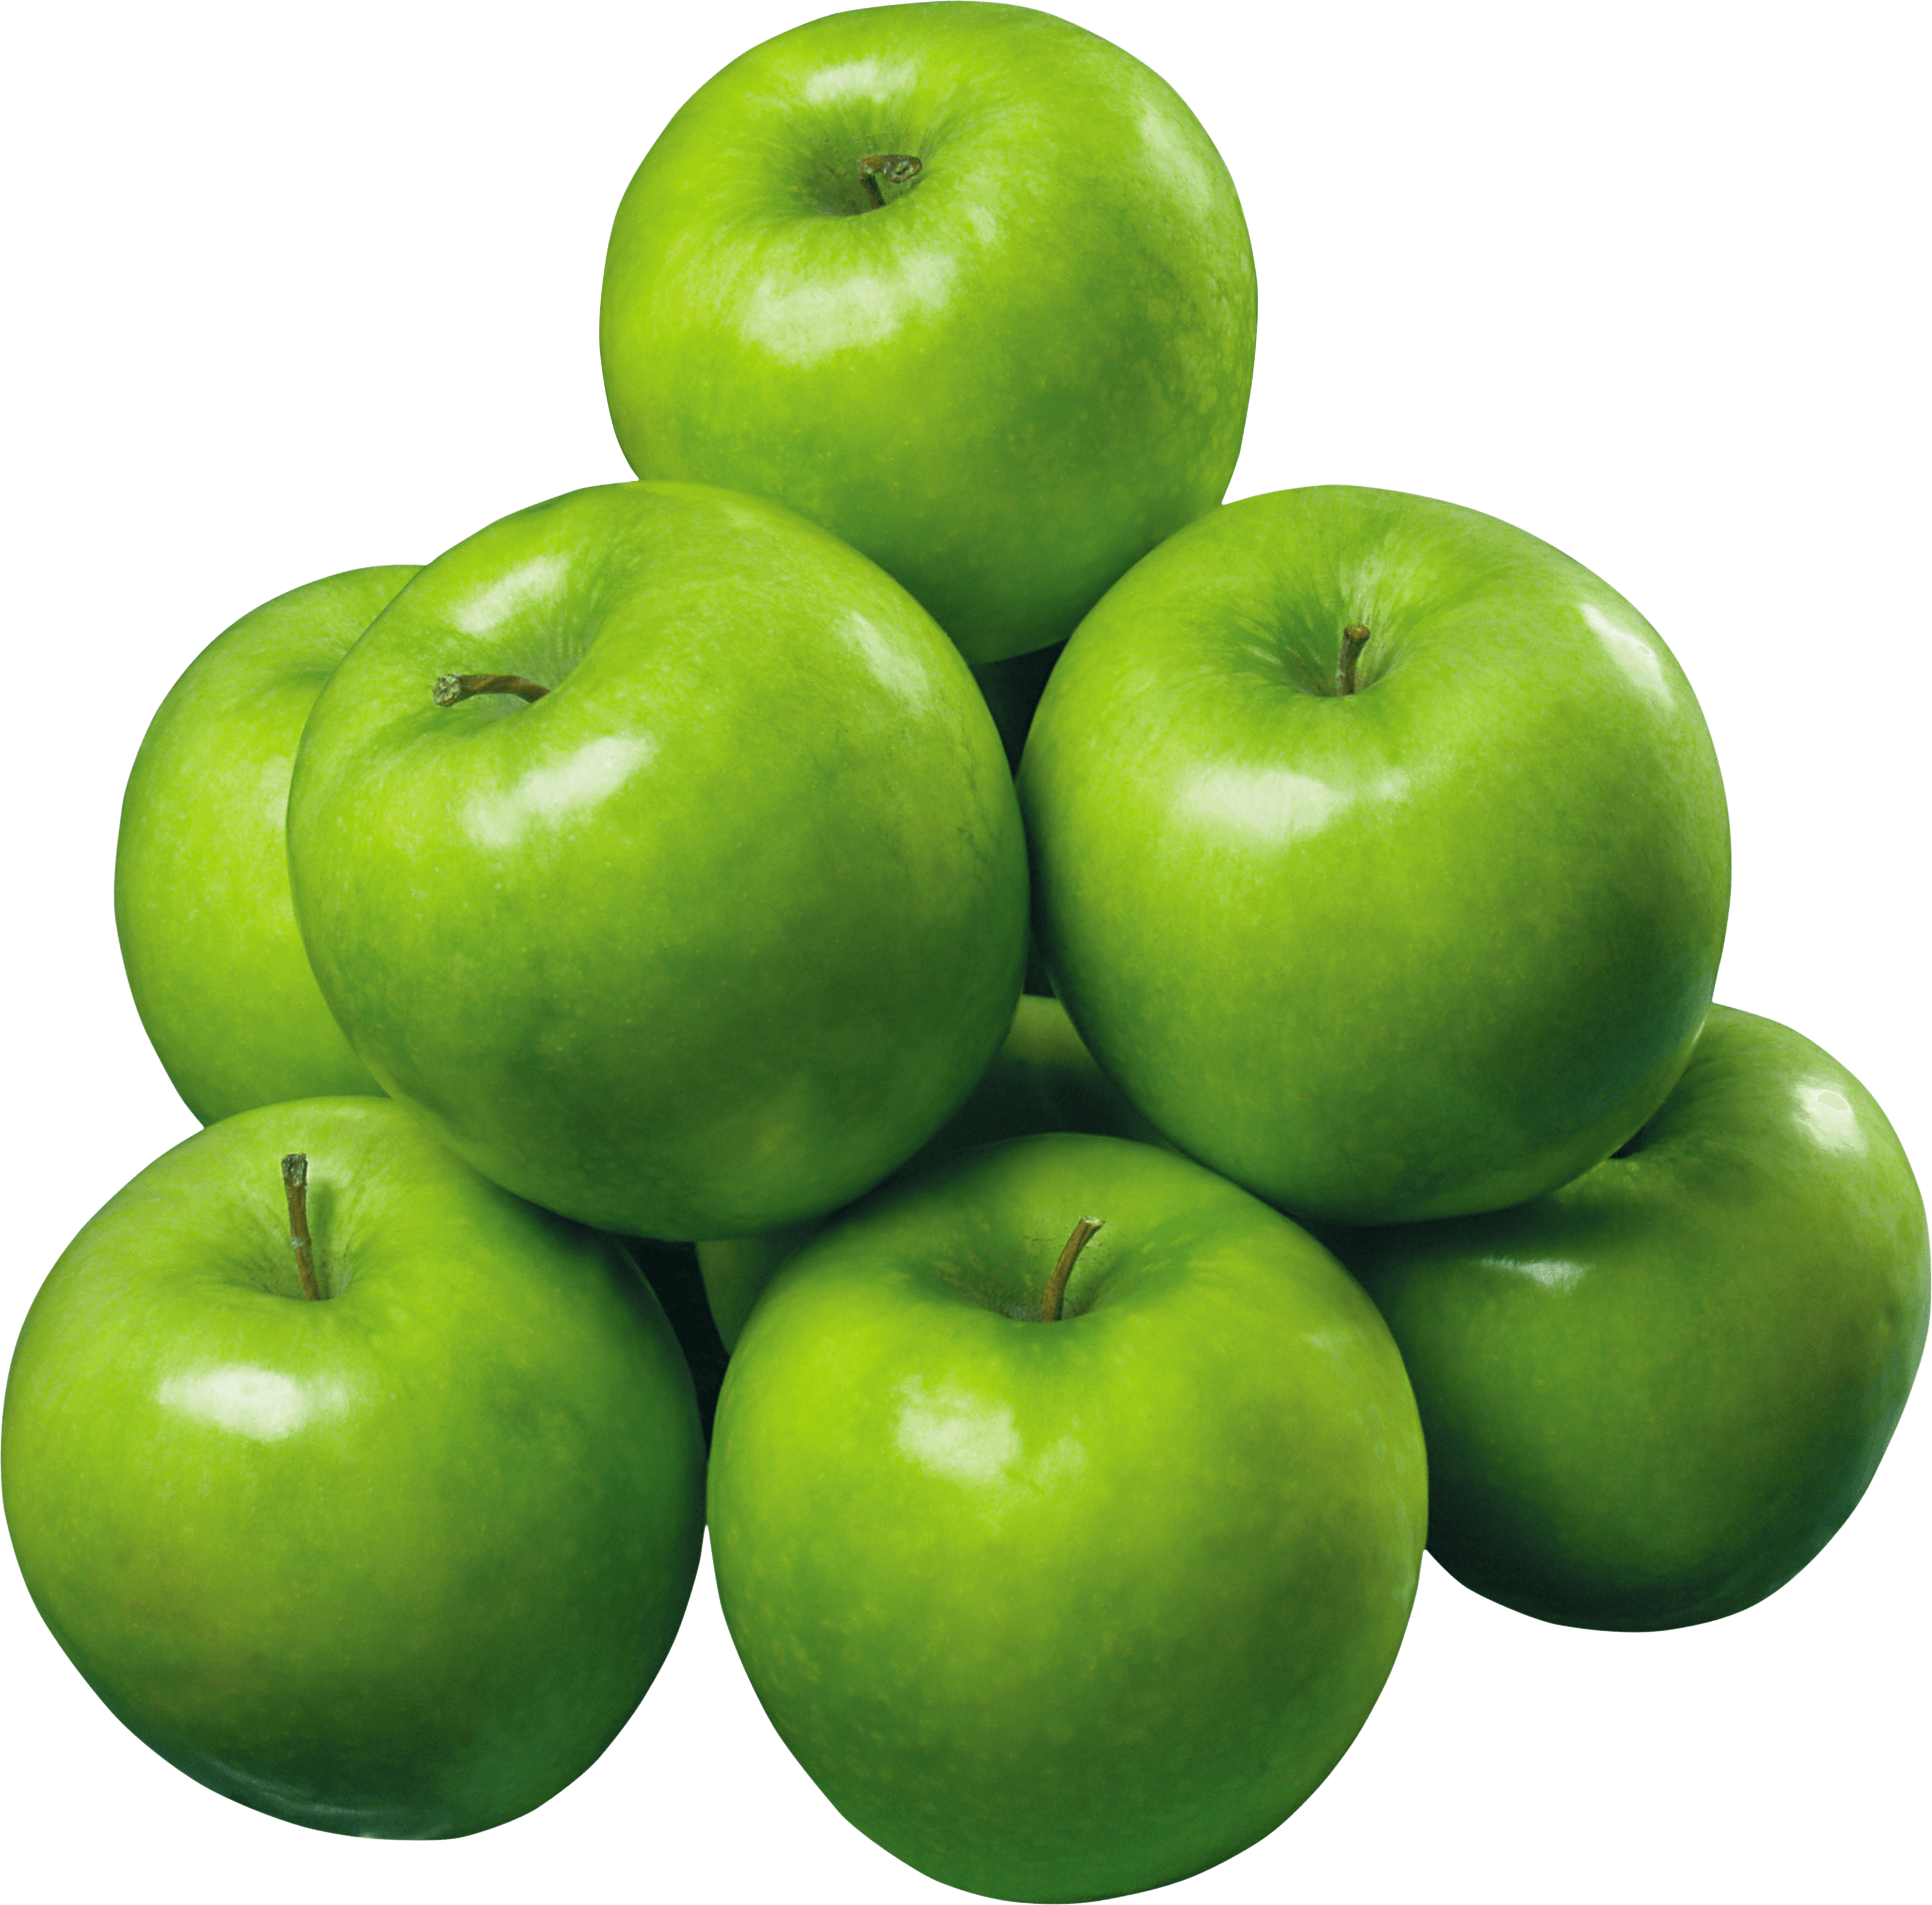 Green apple clipart green background svg freeuse download 20 Green Apples Png Image svg freeuse download